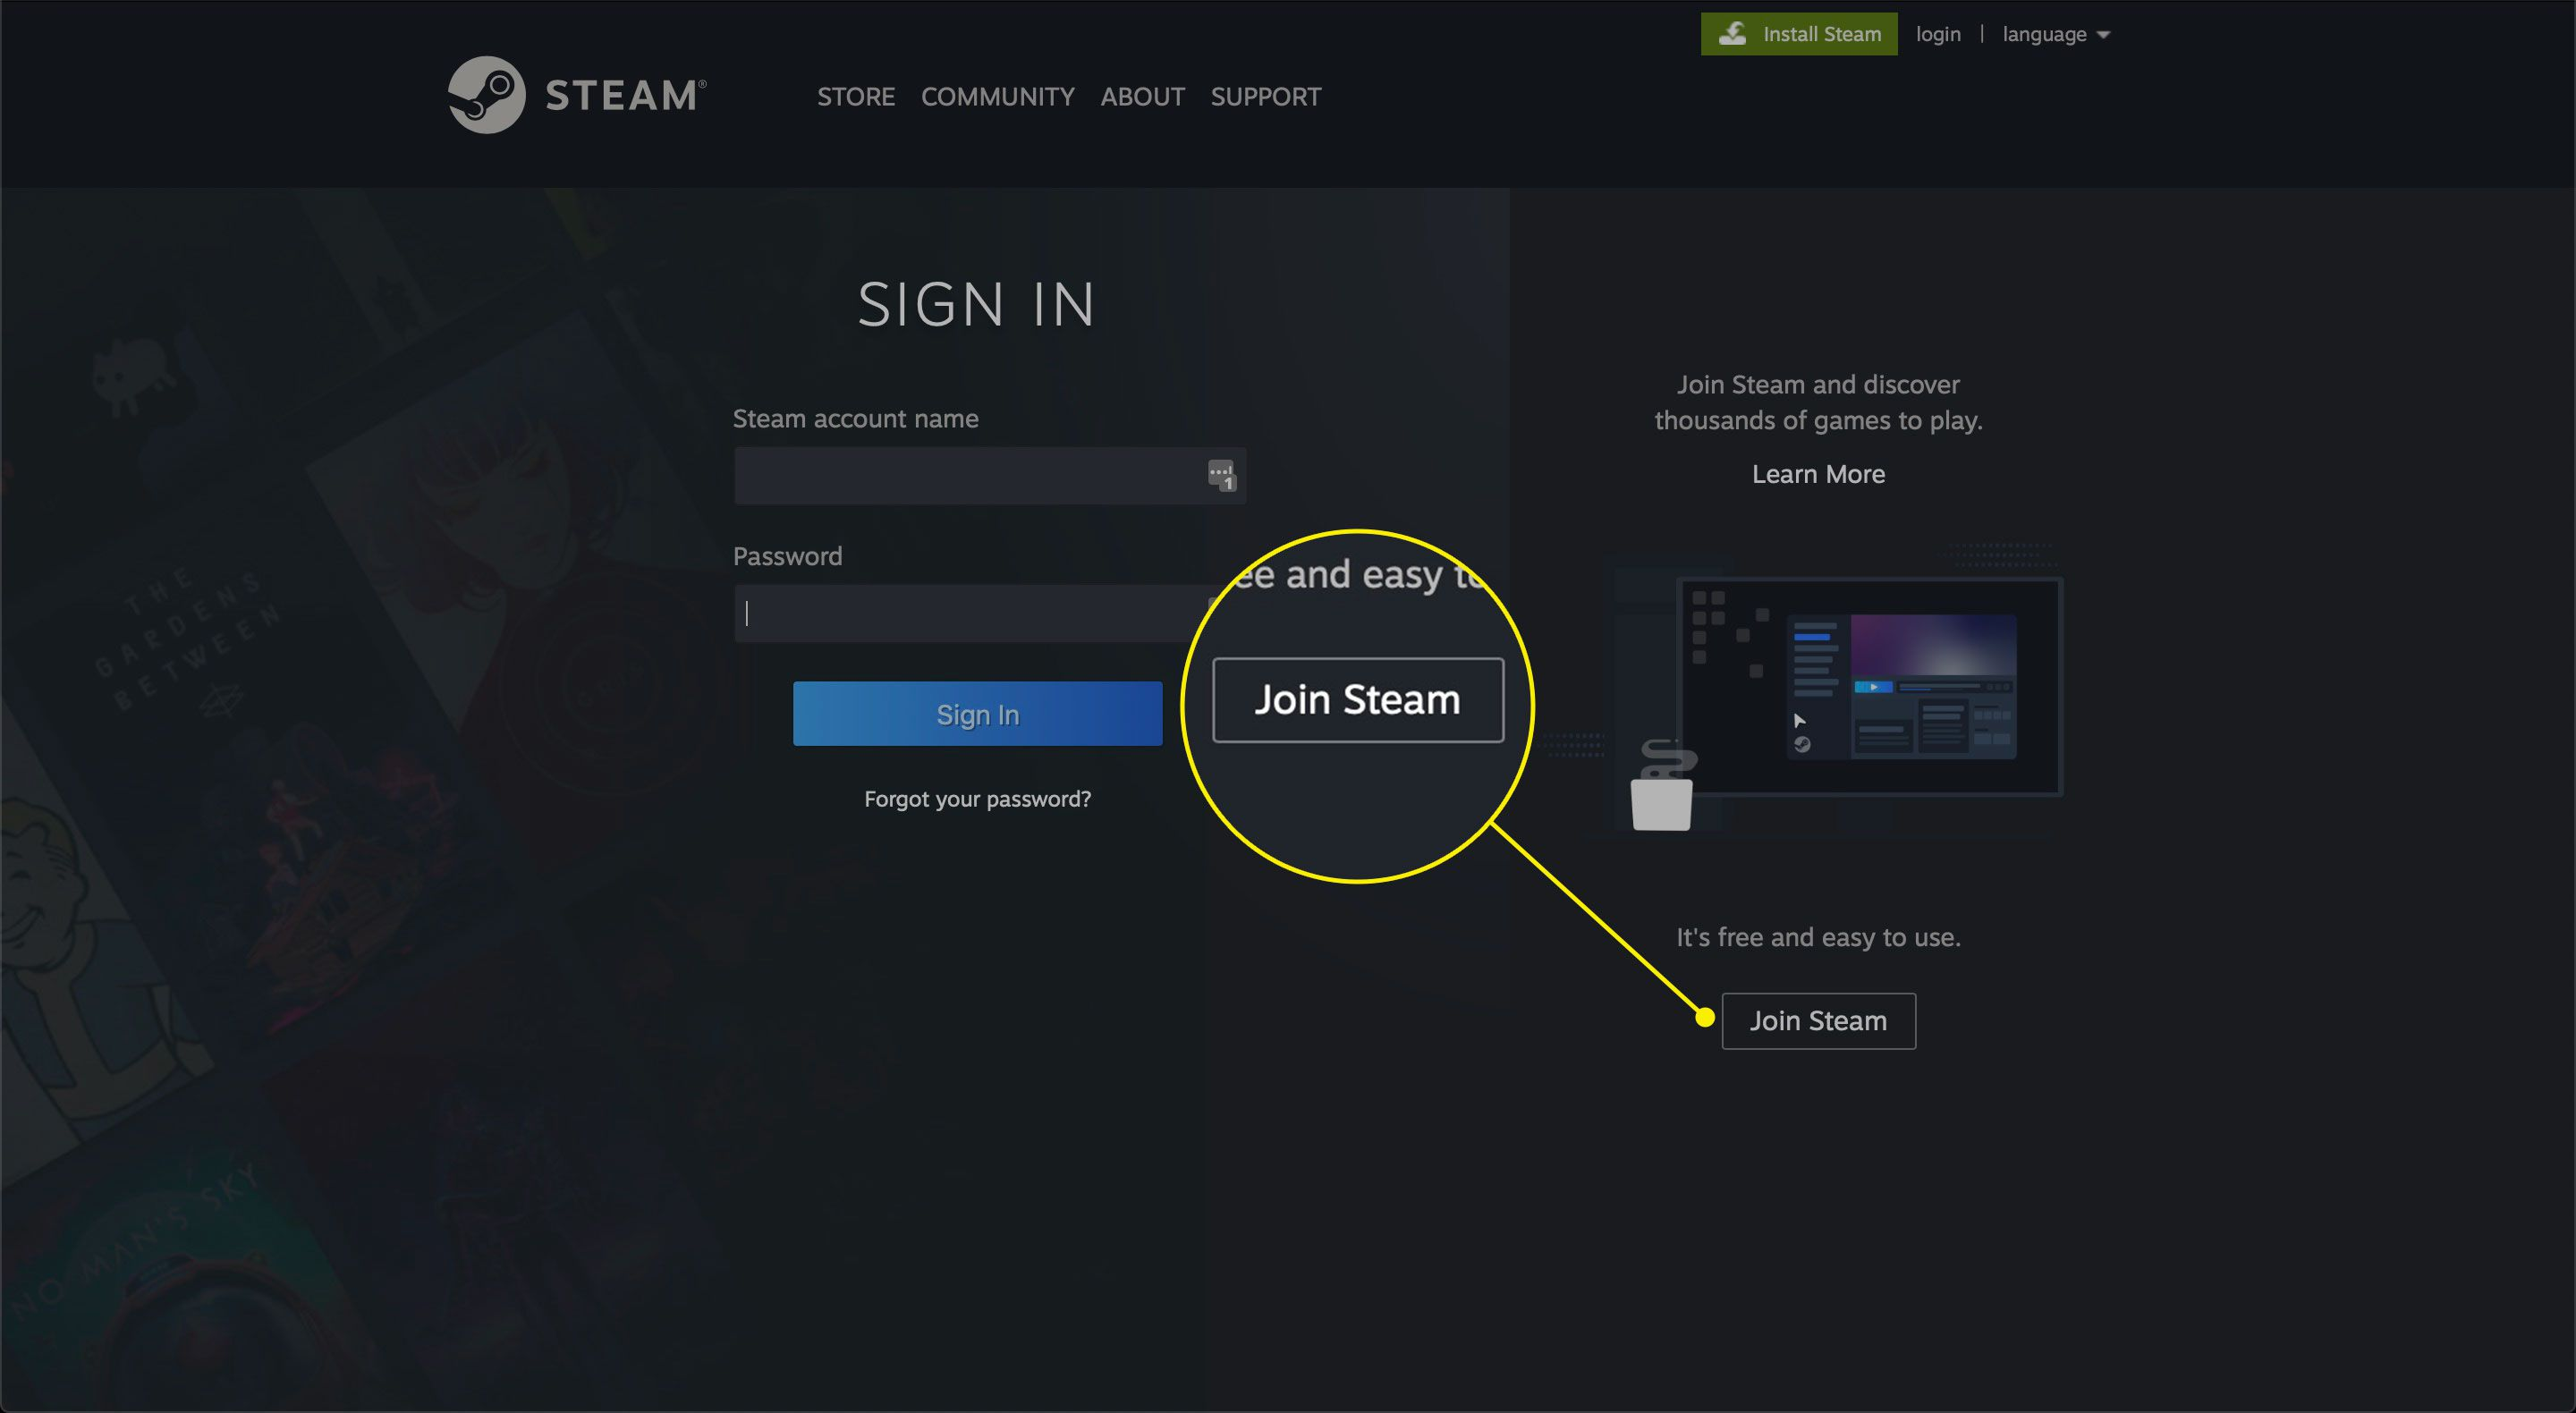 The Join Steam button